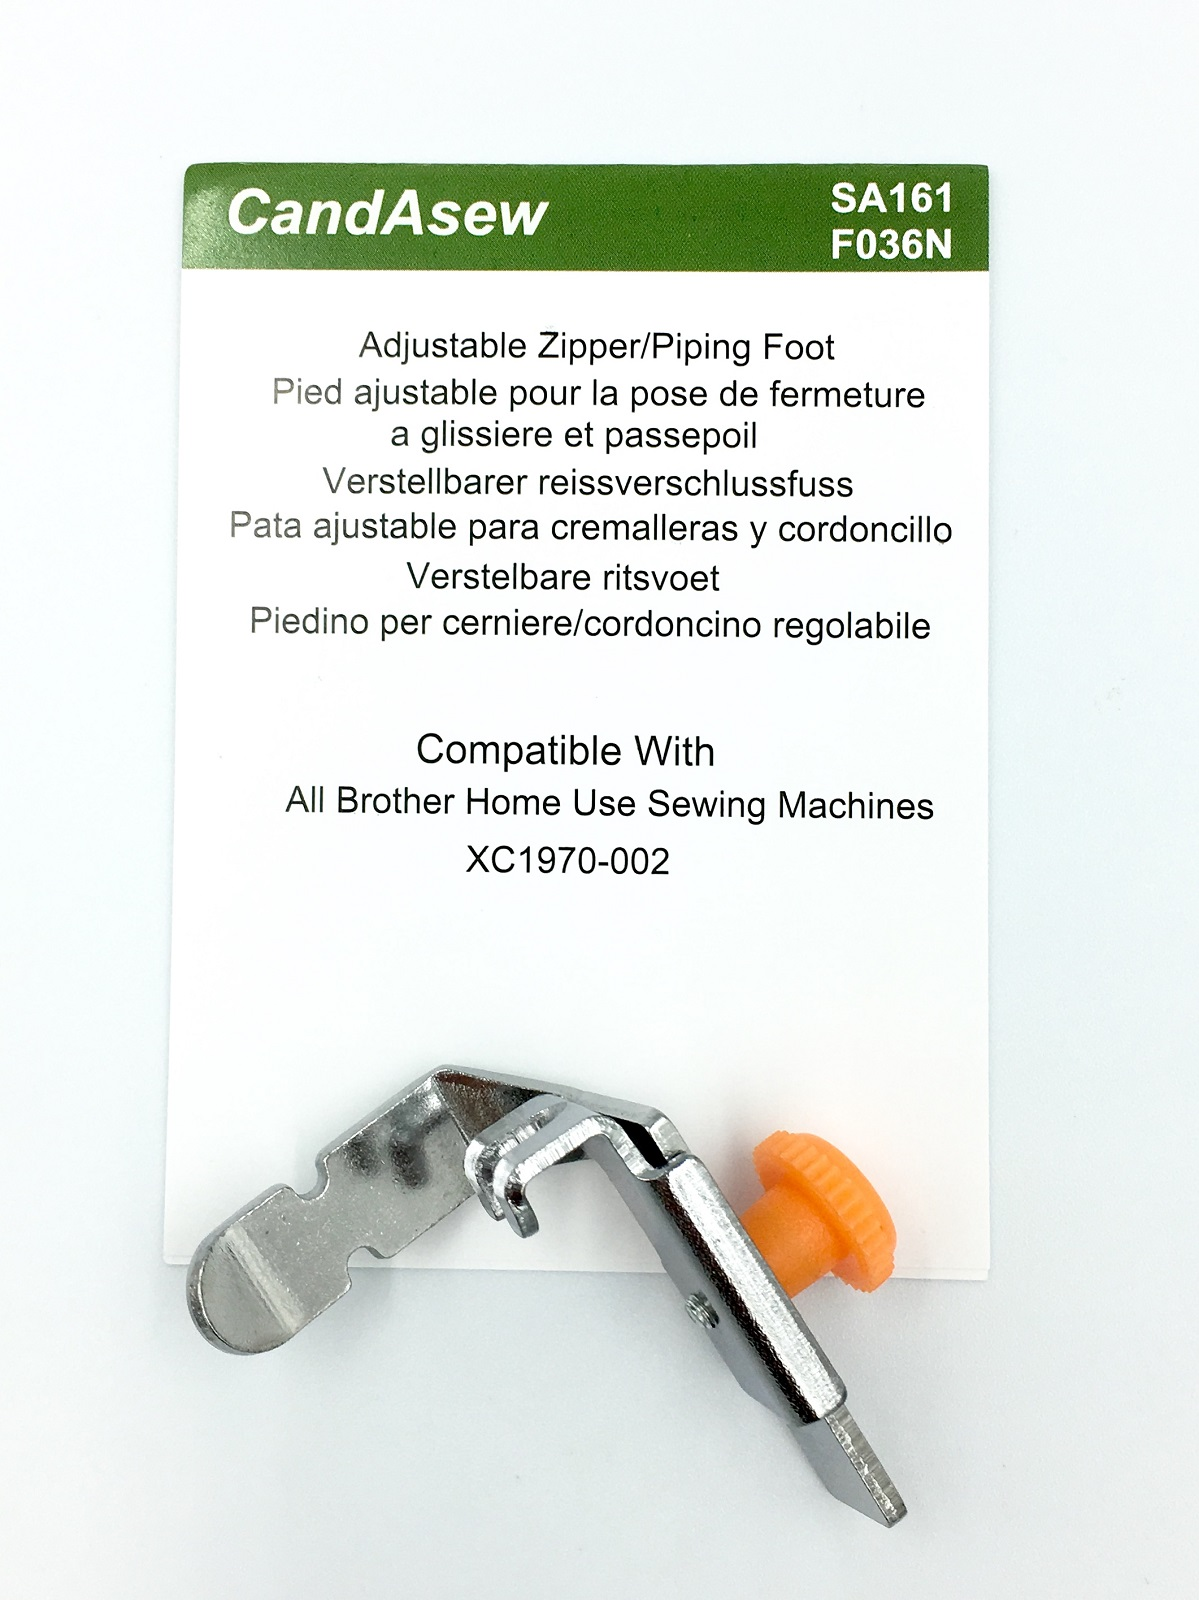 Candasew Adjustable Zip/Piping Foot for Brother SA161